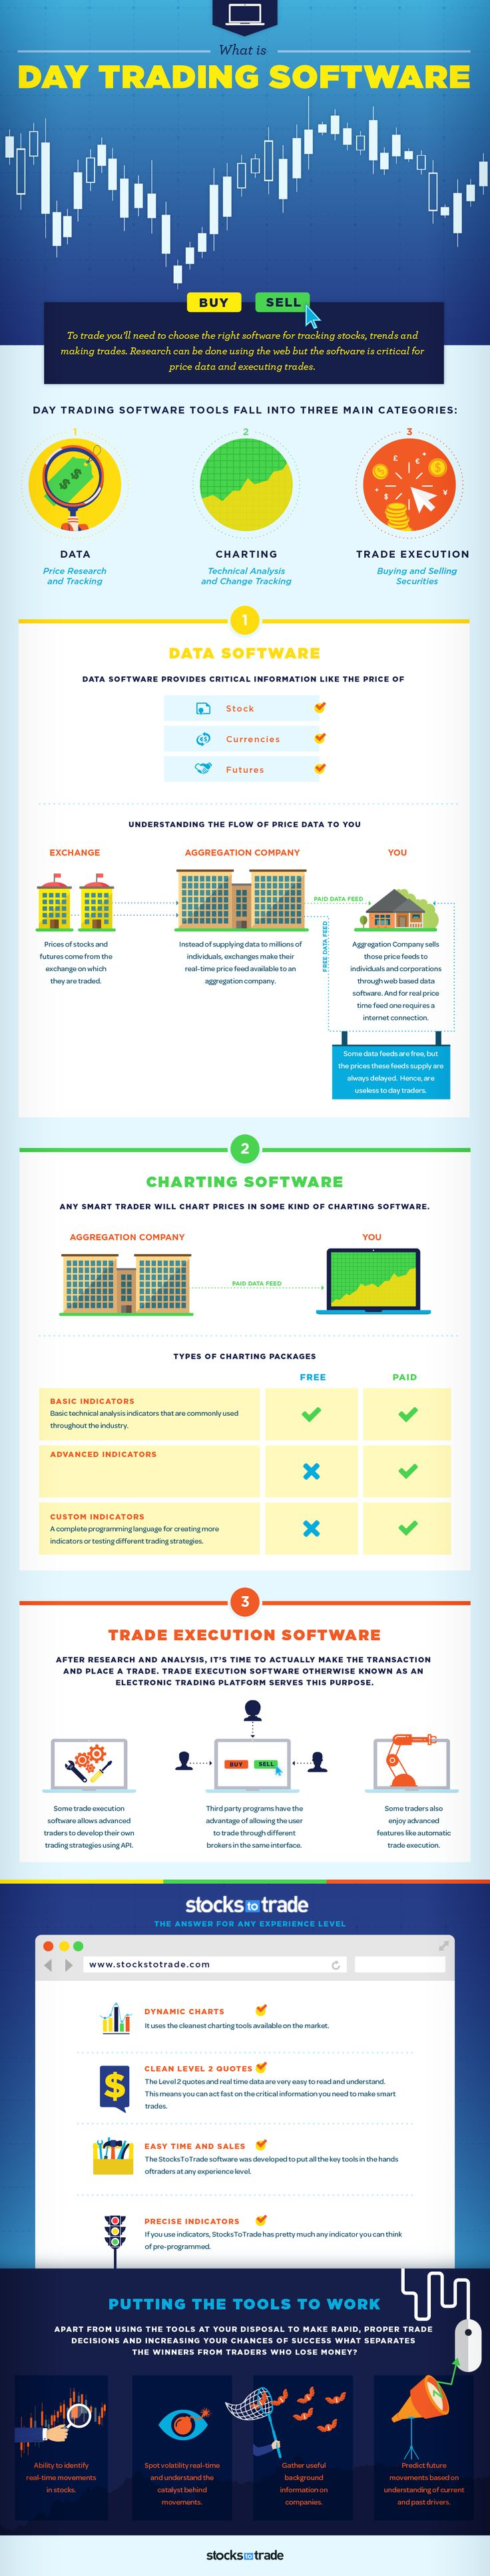 What Is Day Trading Software {INFOGRAPHIC} - StocksToTrade.com